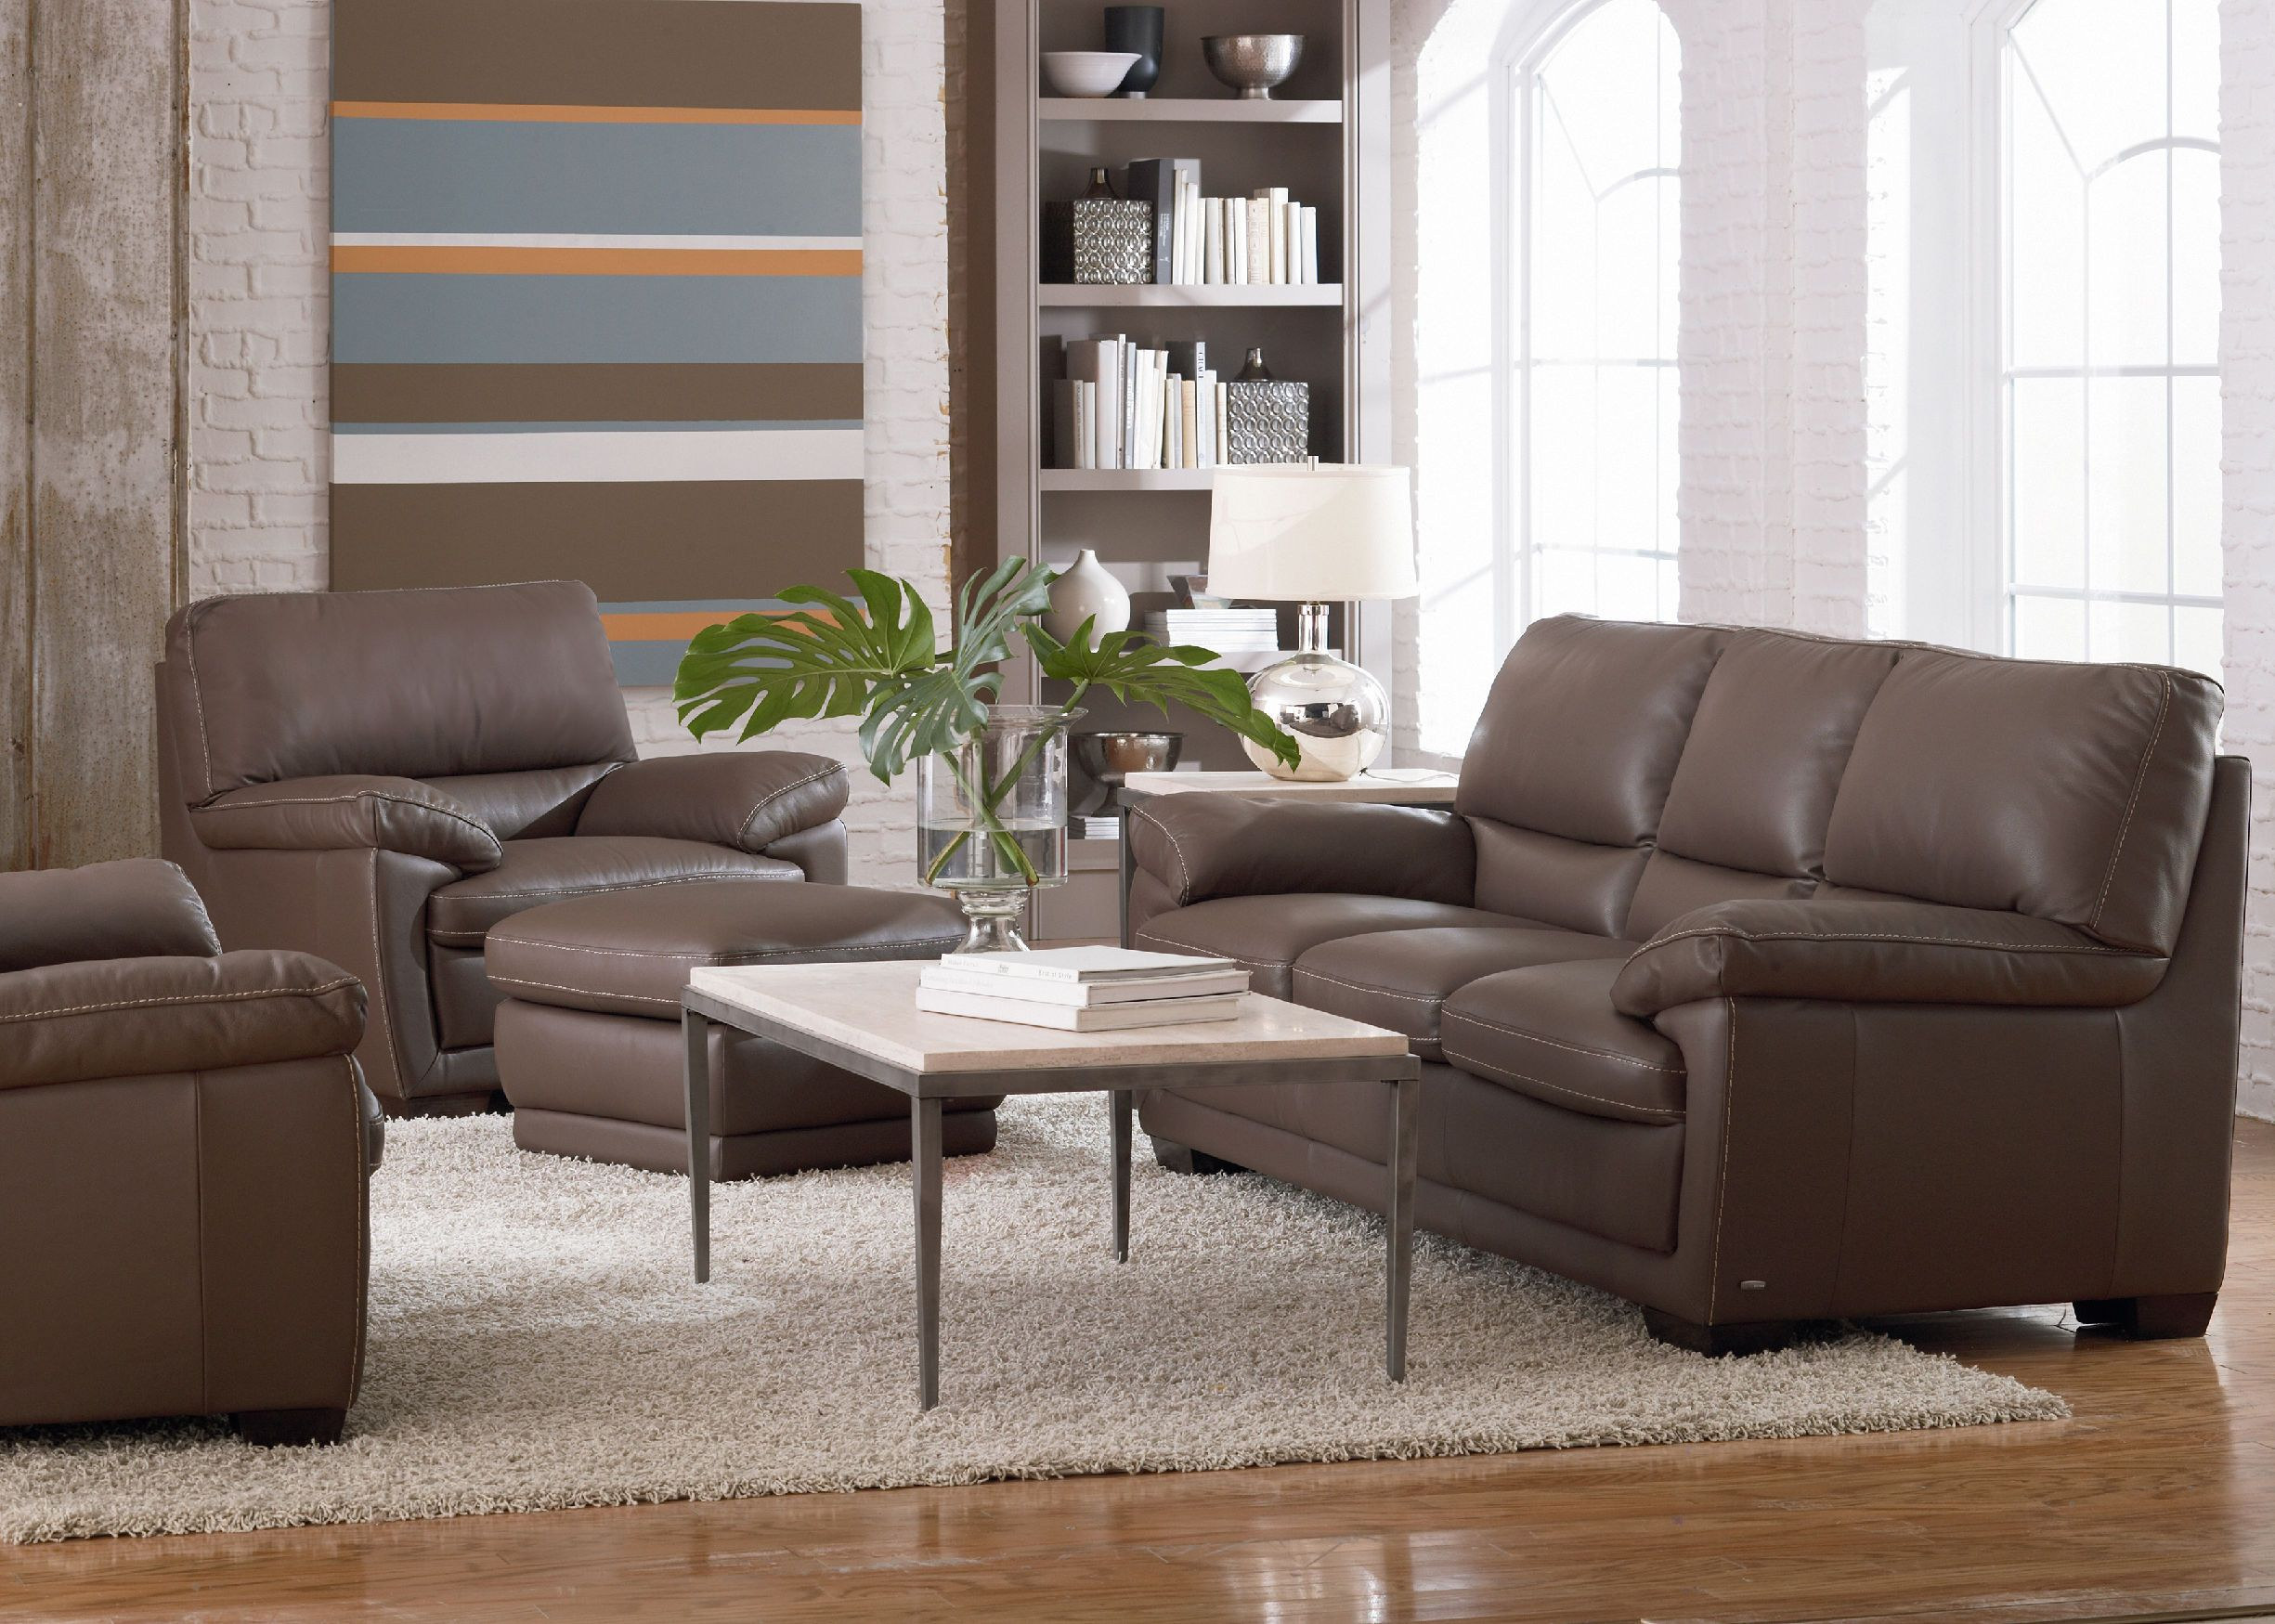 Denver Leather Sofa   DARK TAUPE ST:341188 Italian Leather Sofa, Leather  Sofa Set